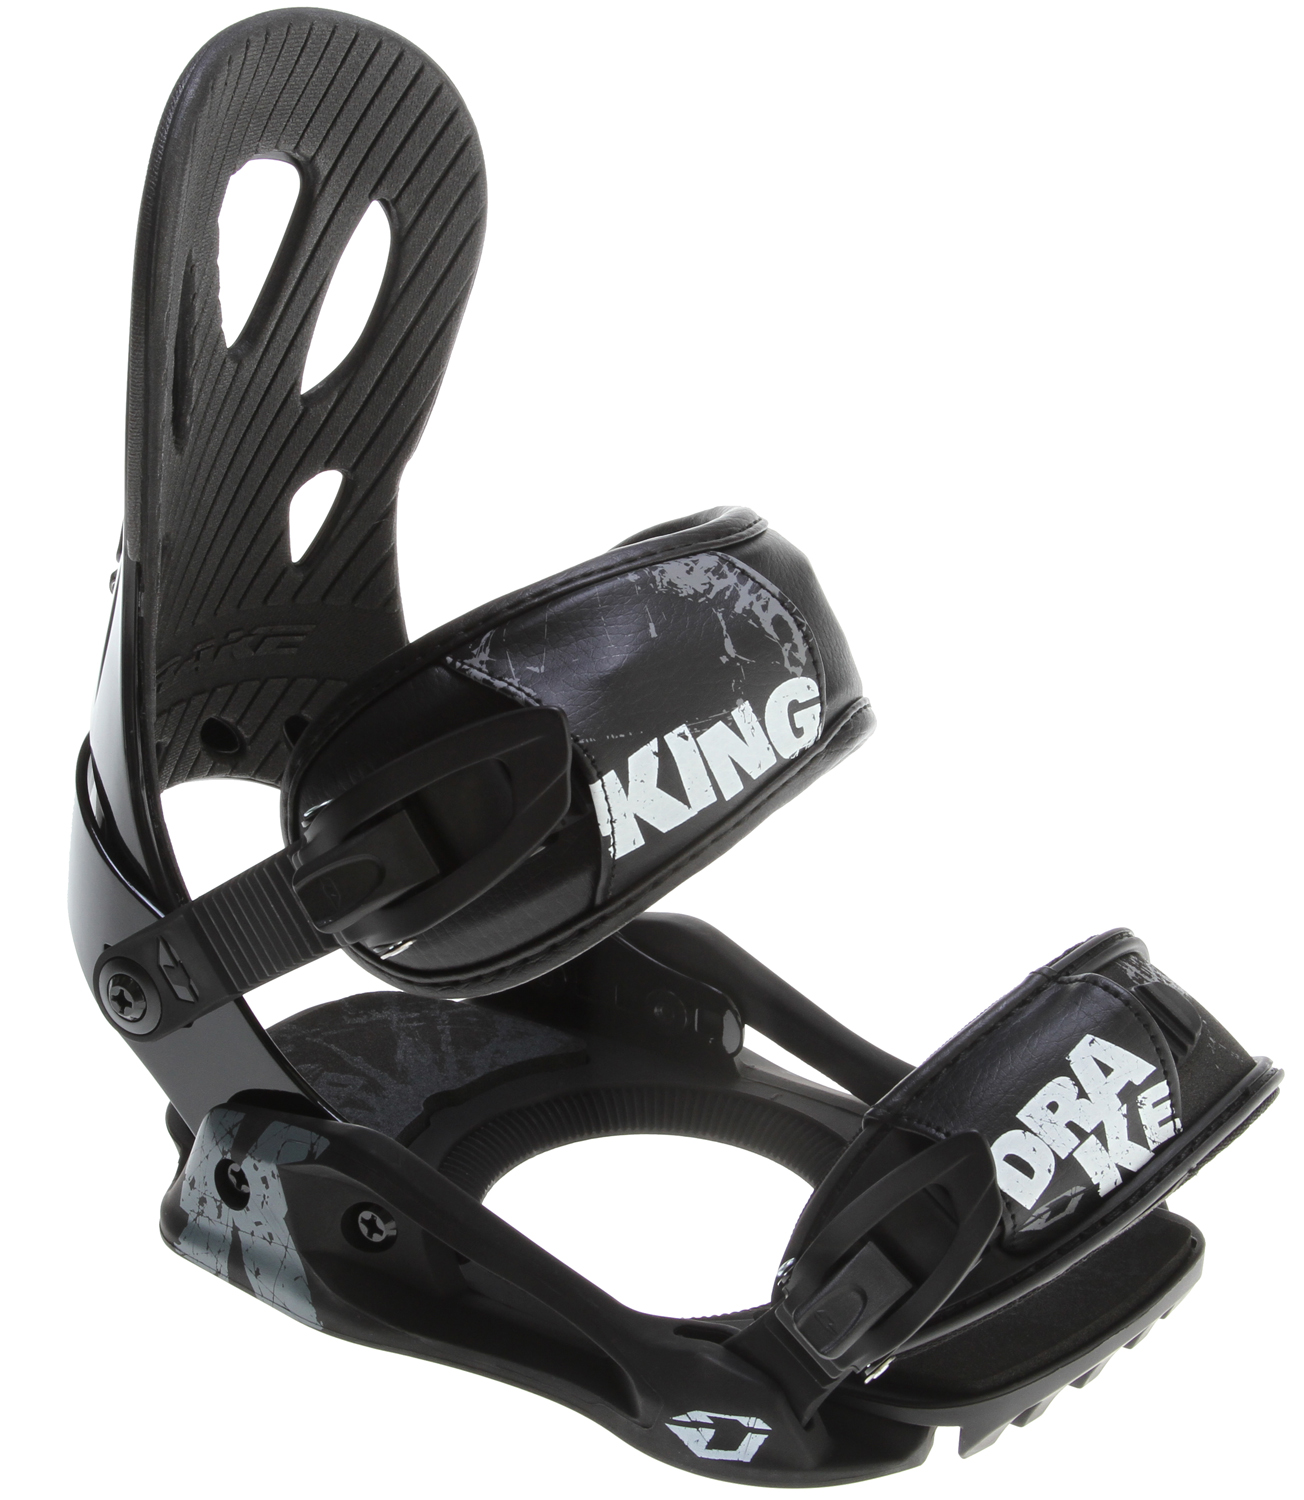 Snowboard All you need is the KING, a solid entry level men's binding that assures great performance and high quality. The KING is perfect for starving riders, who want to reach higher levels of riding thanks to its lightness and flexibility, despite their low budget. The Contour highback is a perfect fit to our boots while the MFC ankle and convertible toe strap assure a better grip and foot hold adding to an already comfortable and permissive binding. The KING blends the best binding basics with a good set of technological features, such as the MAC 4 buckles or comfortable DELTA baseplate, at half the cost of other bindings, so don't wait (again). buy it! DO IT!!Key Features of the Drake King Snowboard Bindings: Delta baseplate Impulse toe ramp interface Eva heelpad dampering Contour Highback MFC Ankle strap MFC Convertible toe straps MAC 4 buckles Classic Disc - $77.95